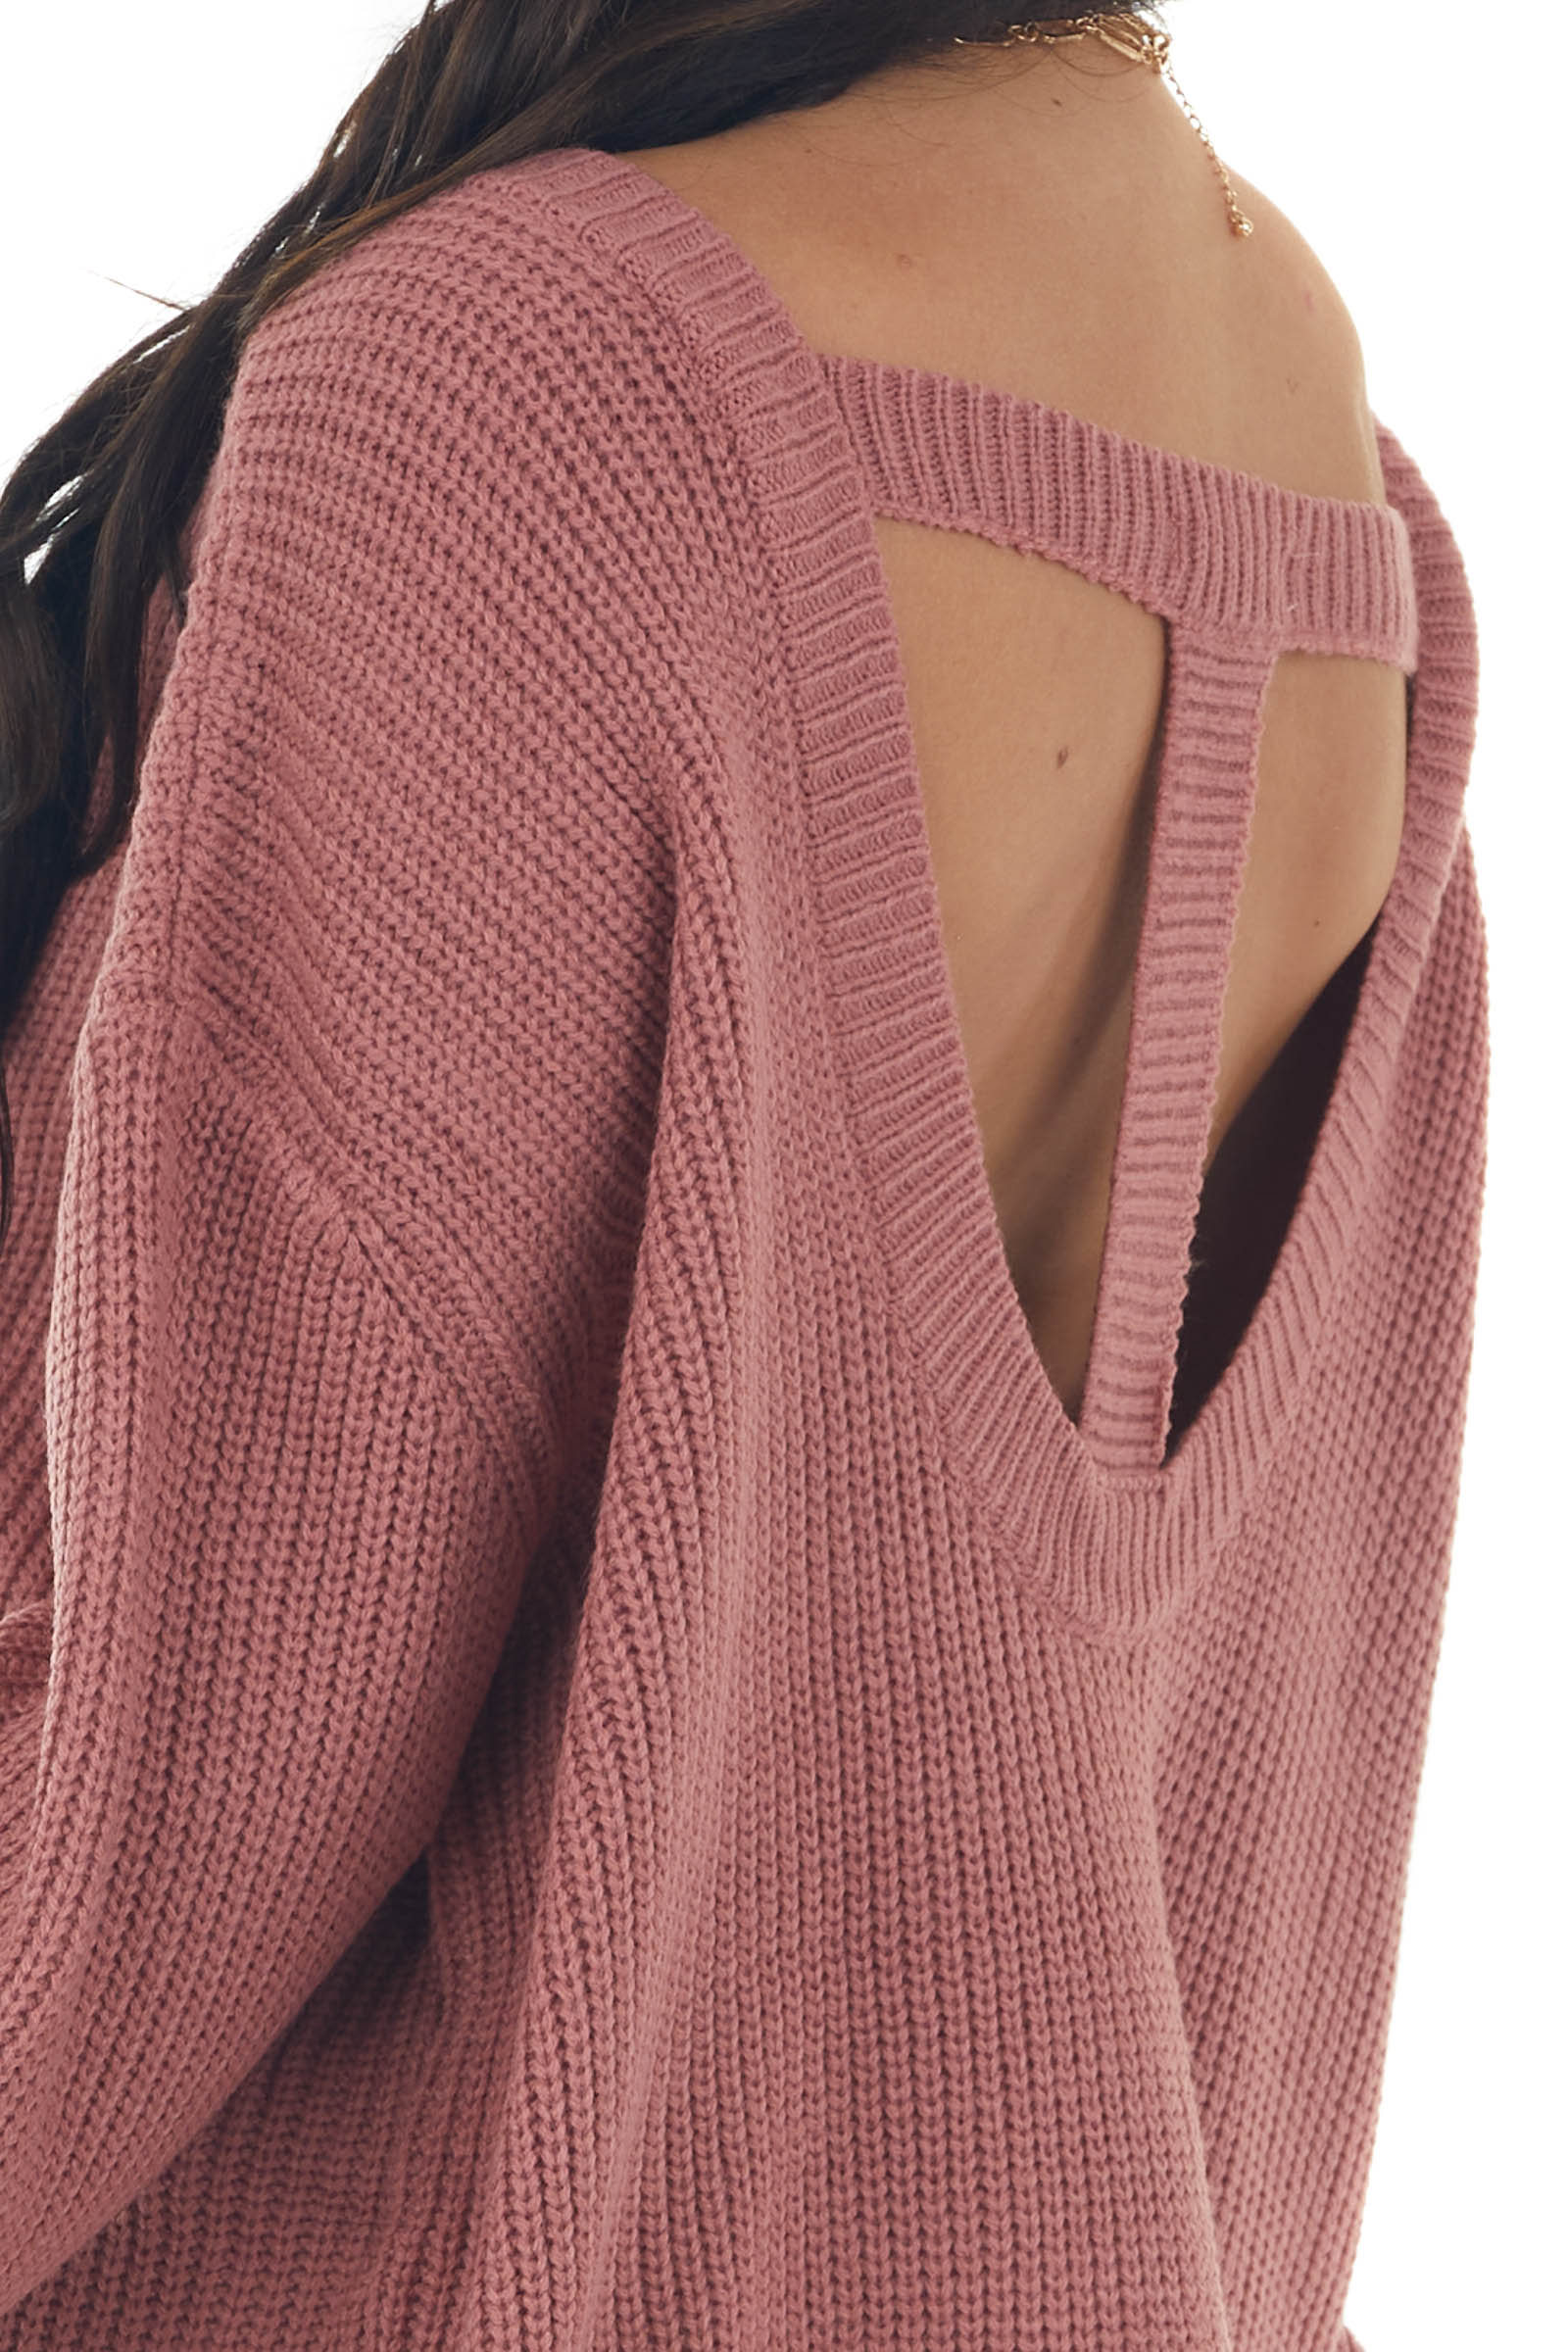 Hazy Rose Boat Neckline Knit Sweater with Back Cutout Detail